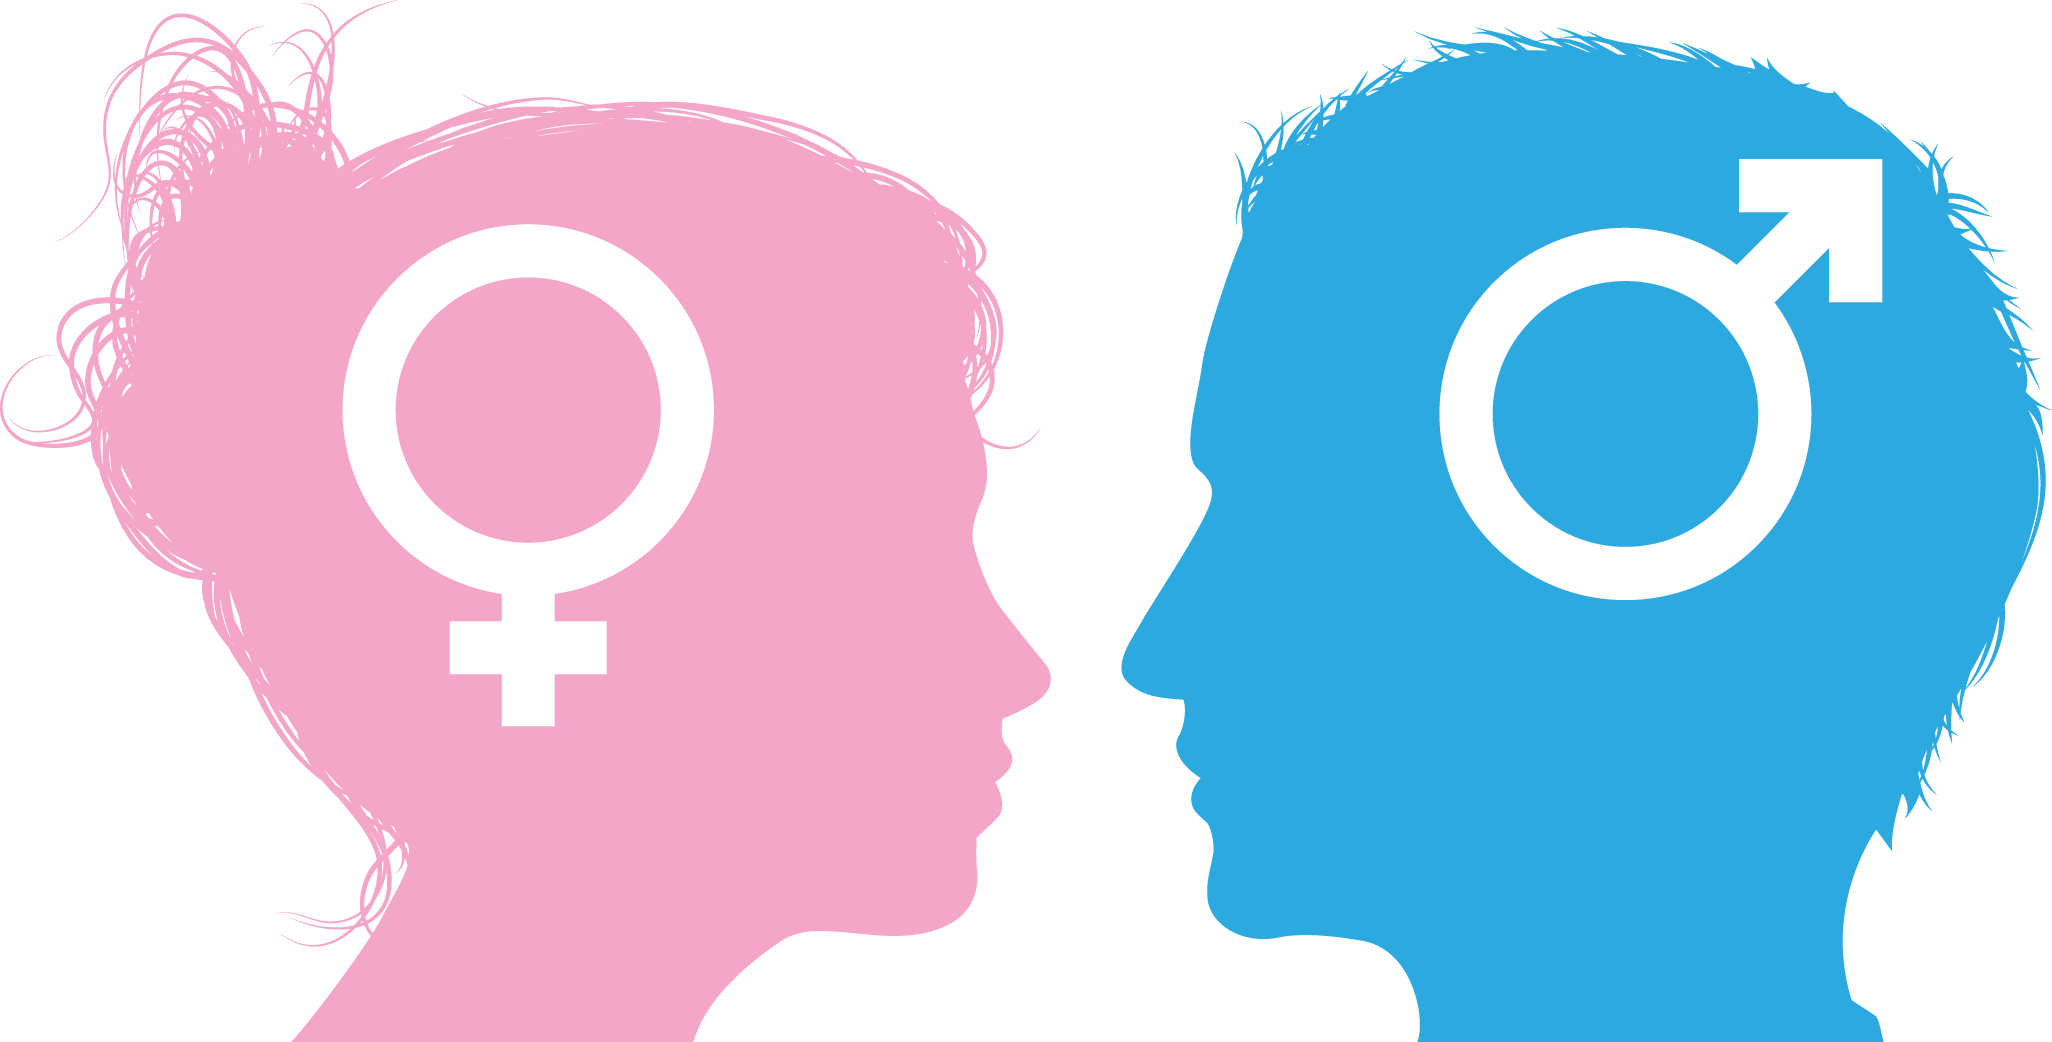 25 Fun Facts About What Makes Men and Women Different - Ask The Scientists